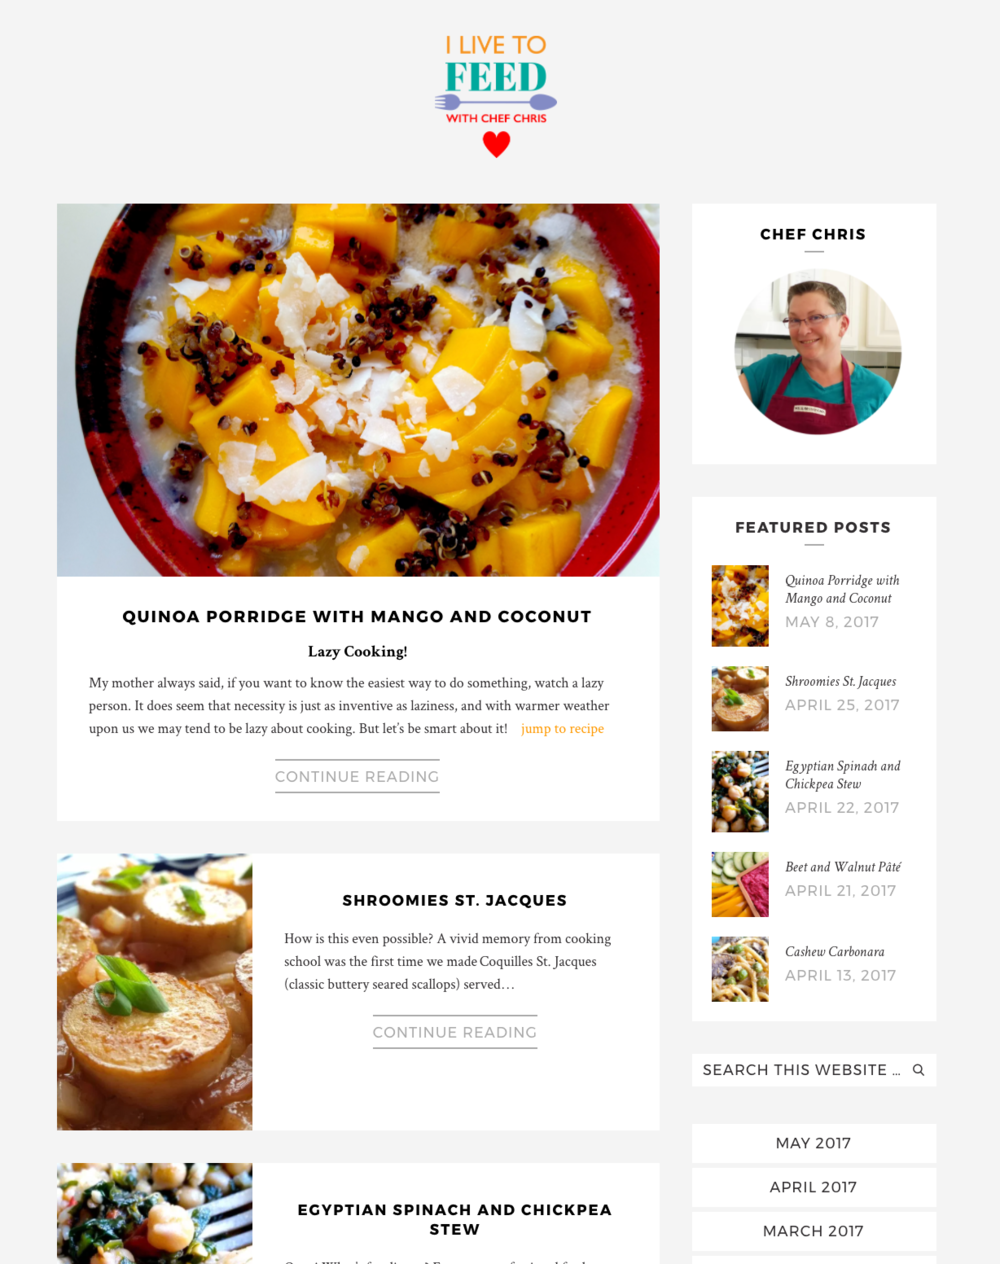 A new look for a food blog - Chef Chris asked for style and functionality for her blog. The new site has an easy-to-search archive, downloadable recipes and integrated Instagram posts.